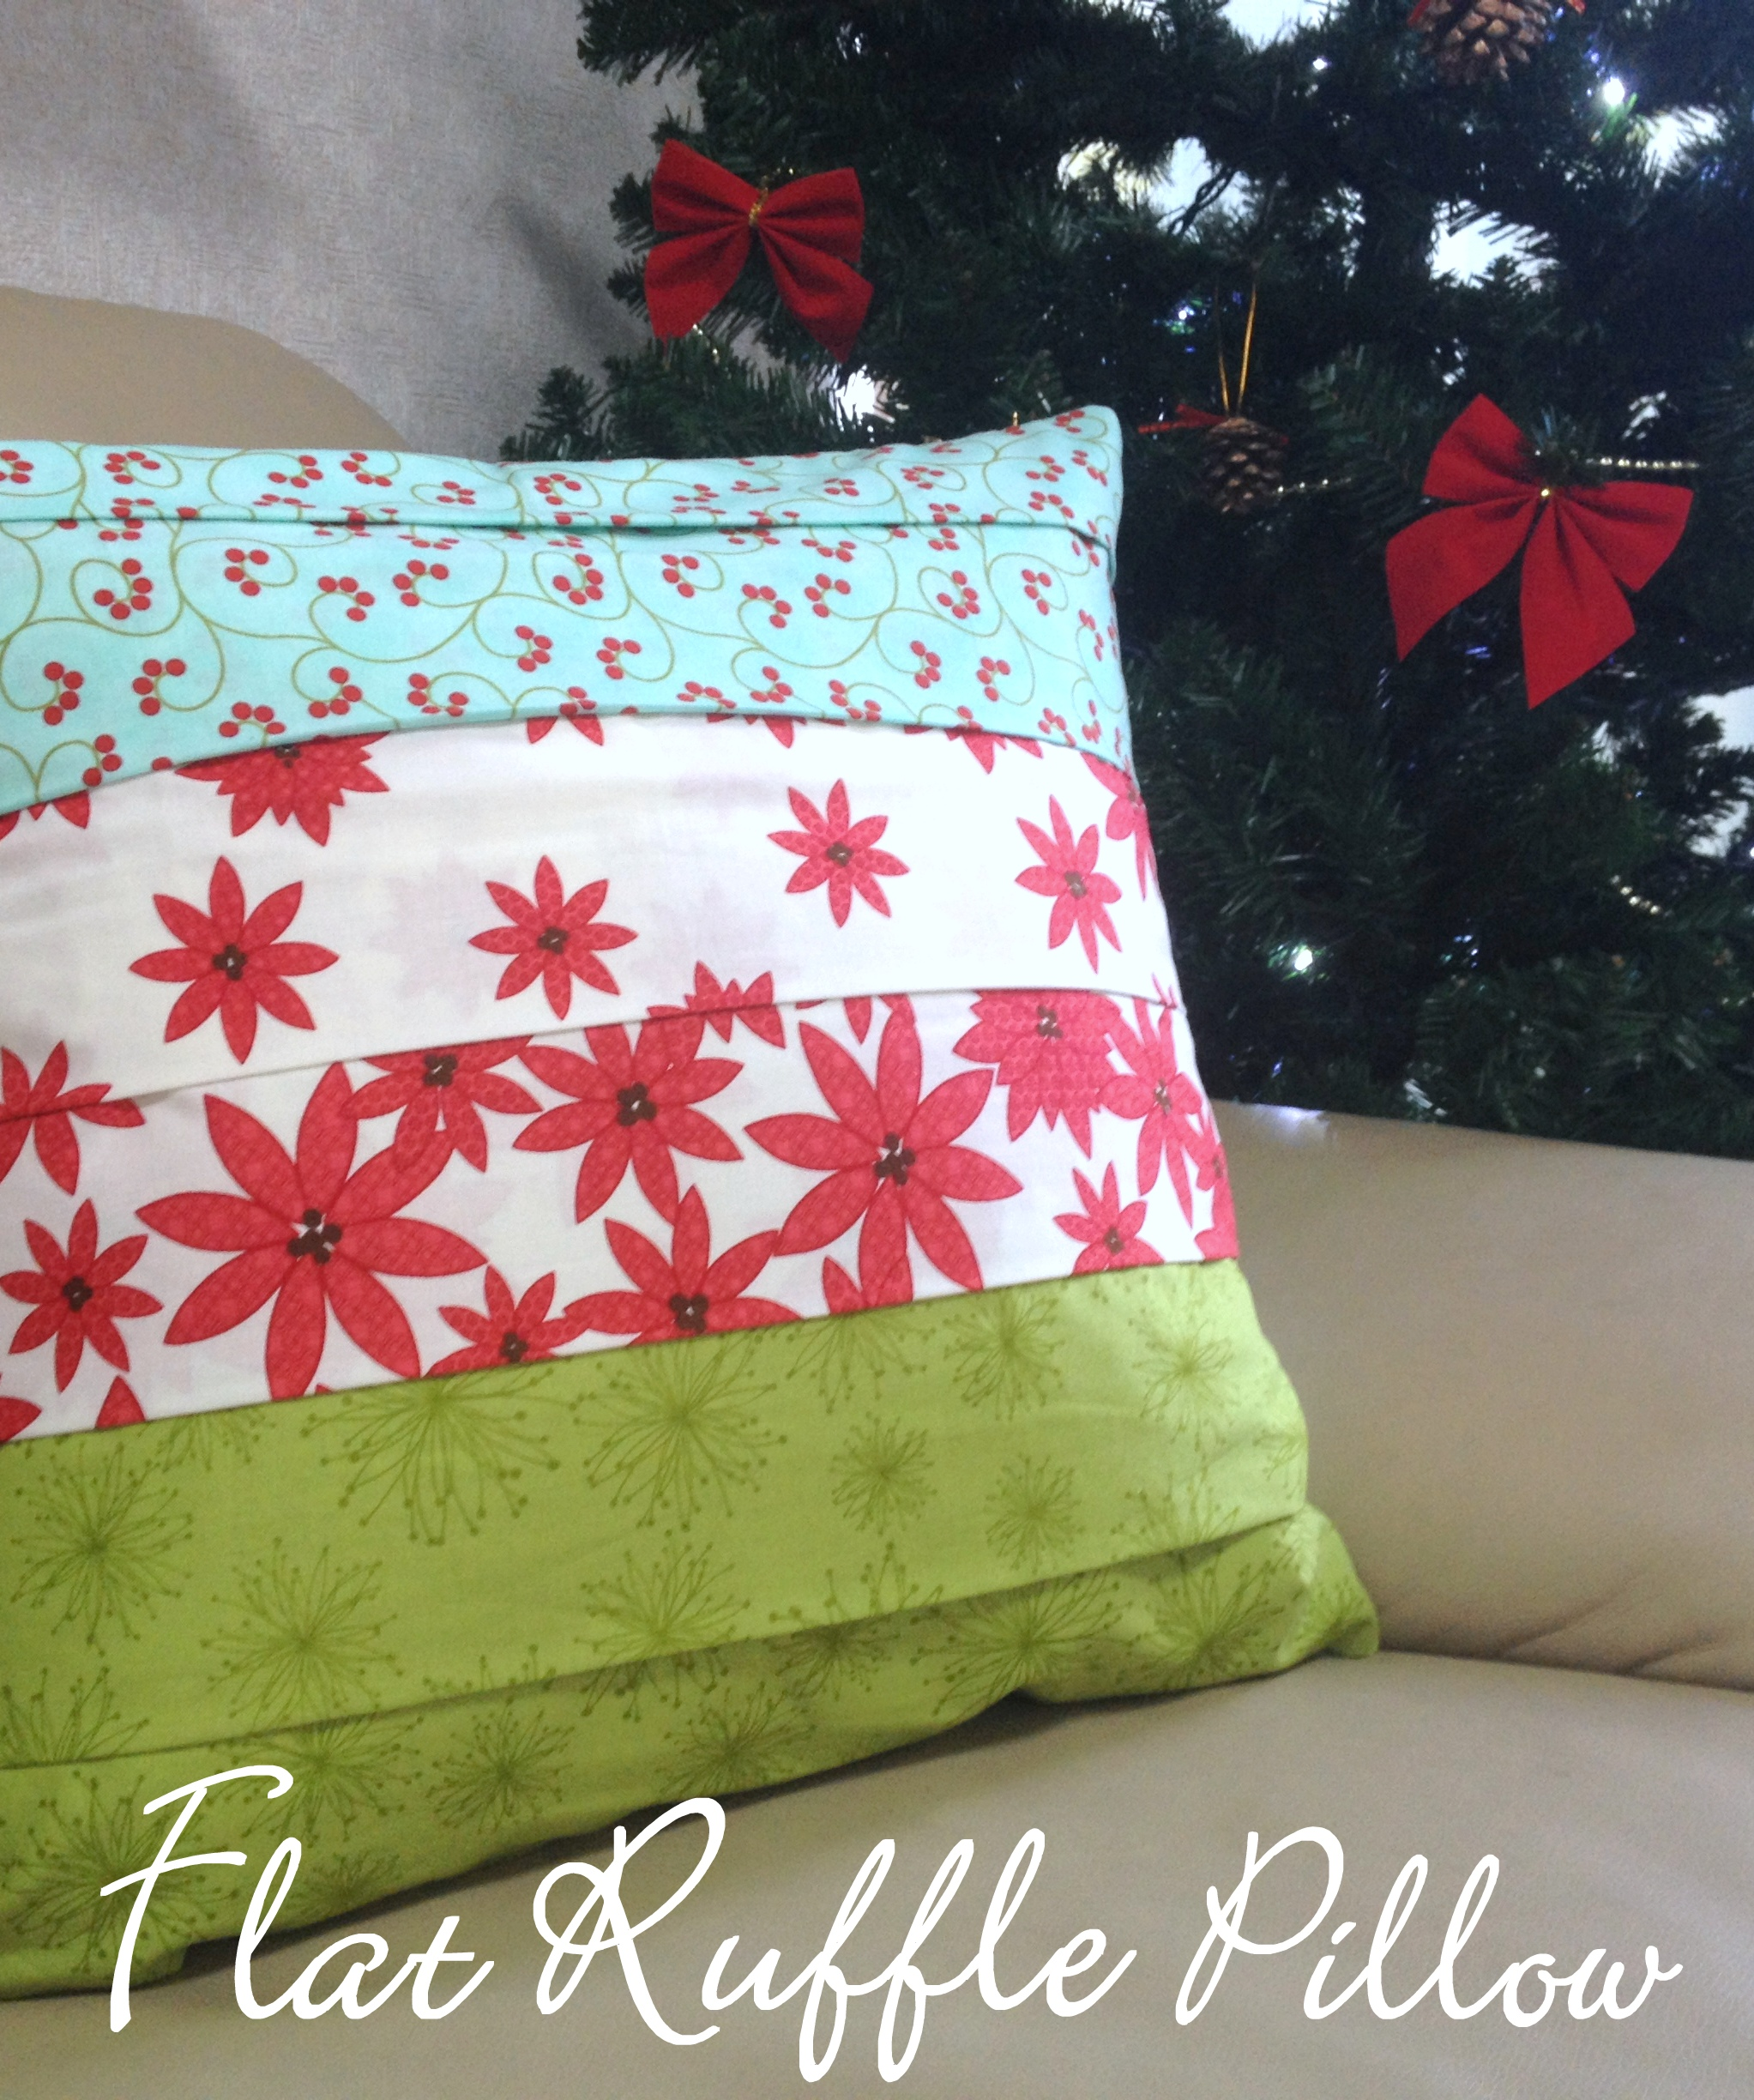 A Cushion For Christmas – A Flat Ruffle Pillow Tutorial